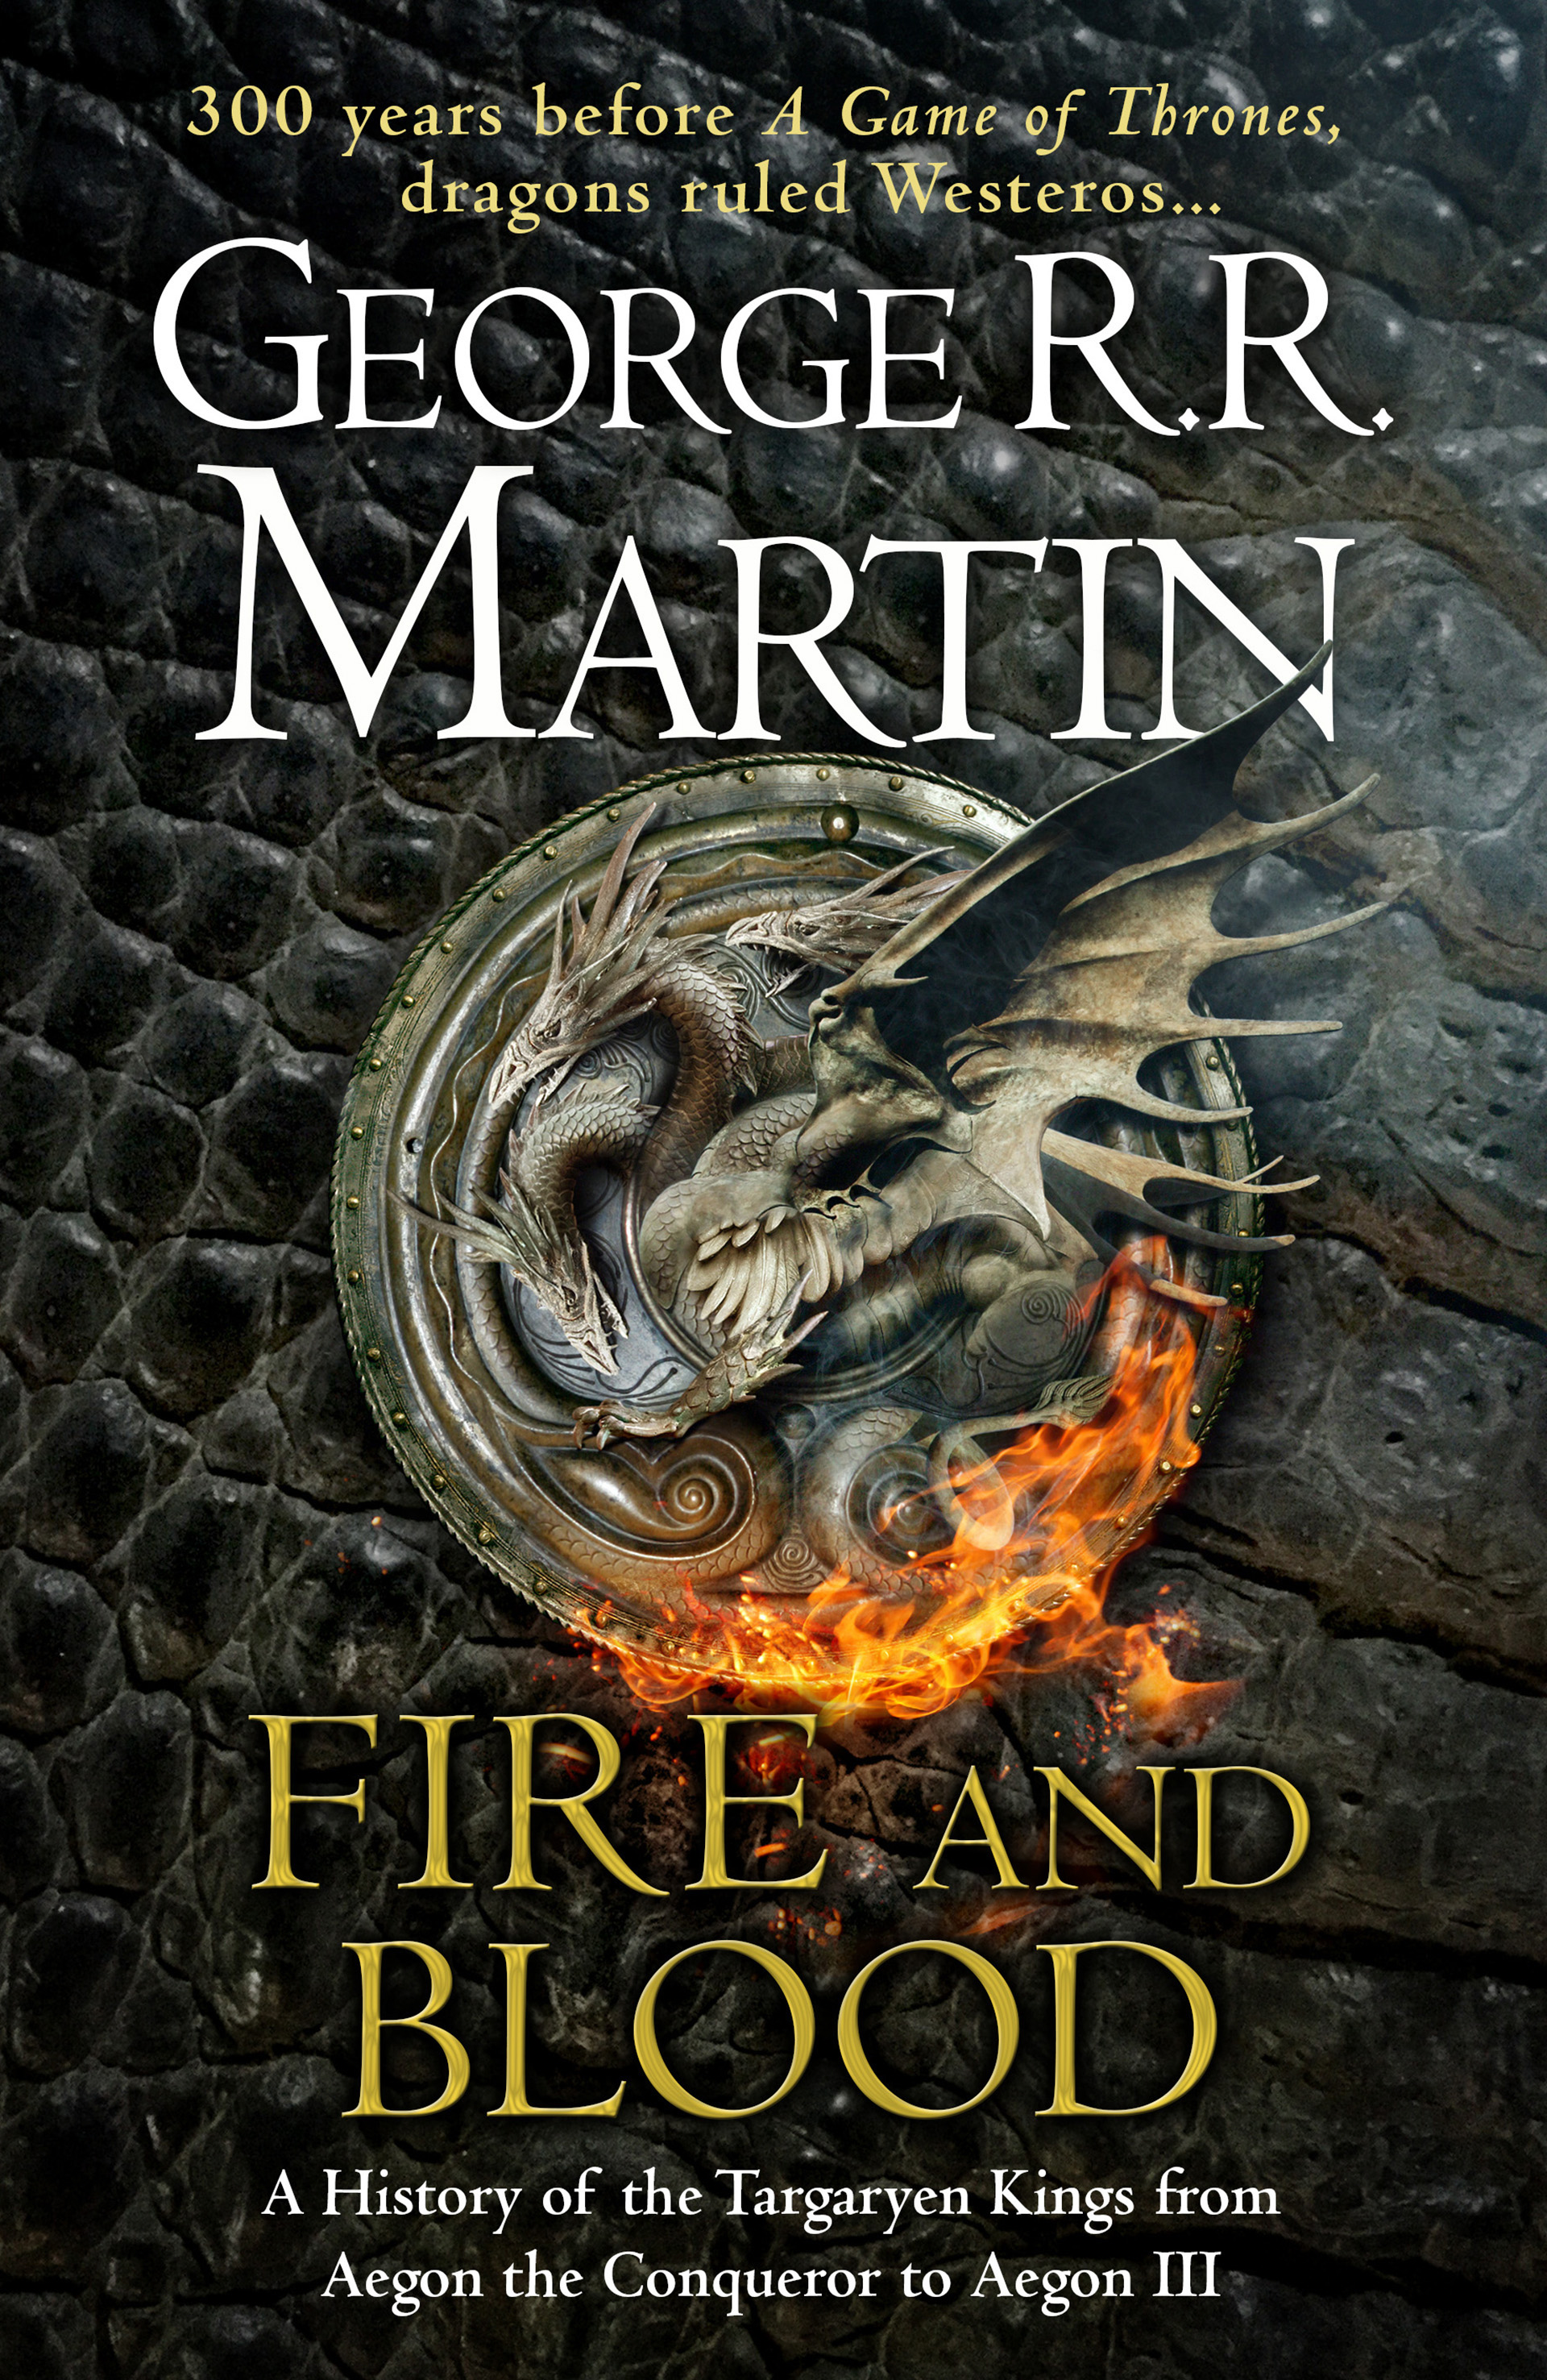 Fire and Blood: A History of the Targaryen Kings from Aegon the Conqueror to Aegon III as scribed by Archmaester Gyldayn by George R.R. Martin, ISBN: 9780008307738